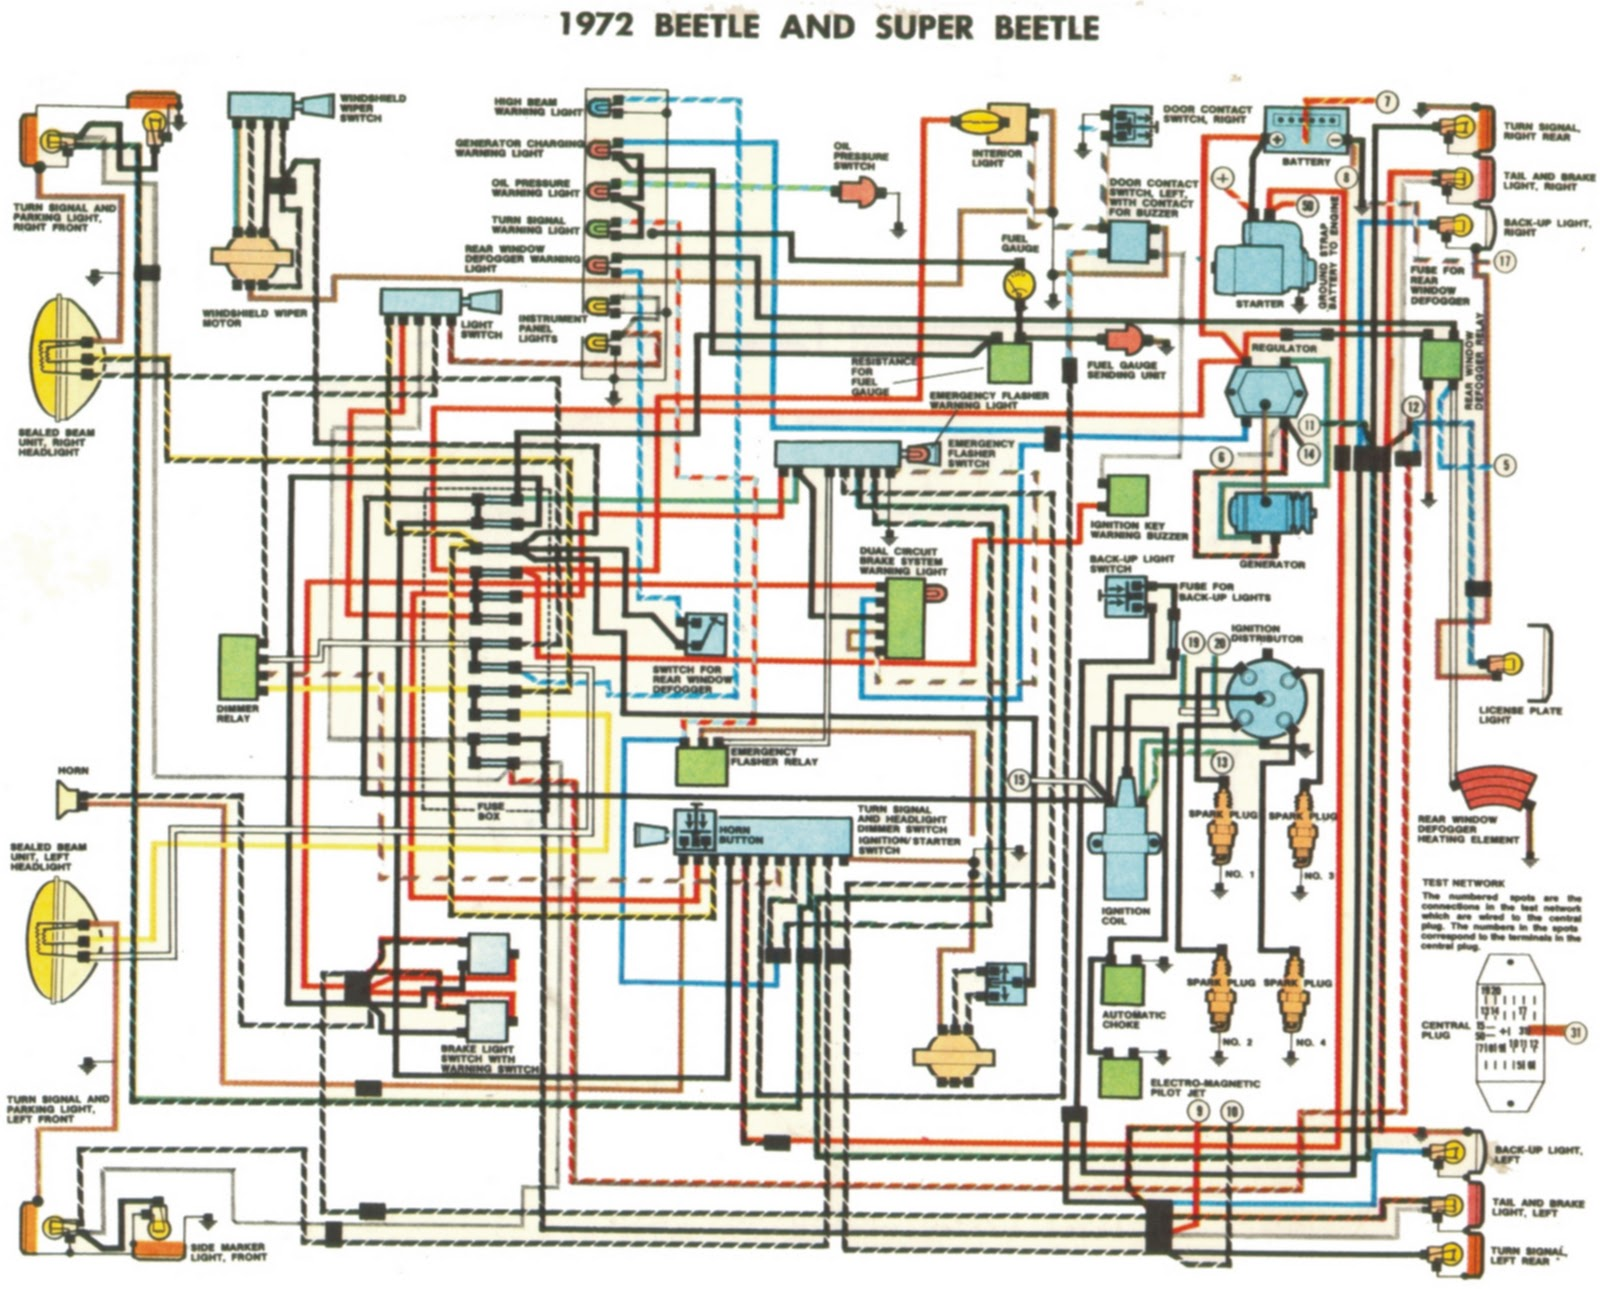 1972 beetle and super beetle wiring diagrams wiring diagrams for a 1973 vw super beetle readingrat net super beetle wiring diagram at bayanpartner.co